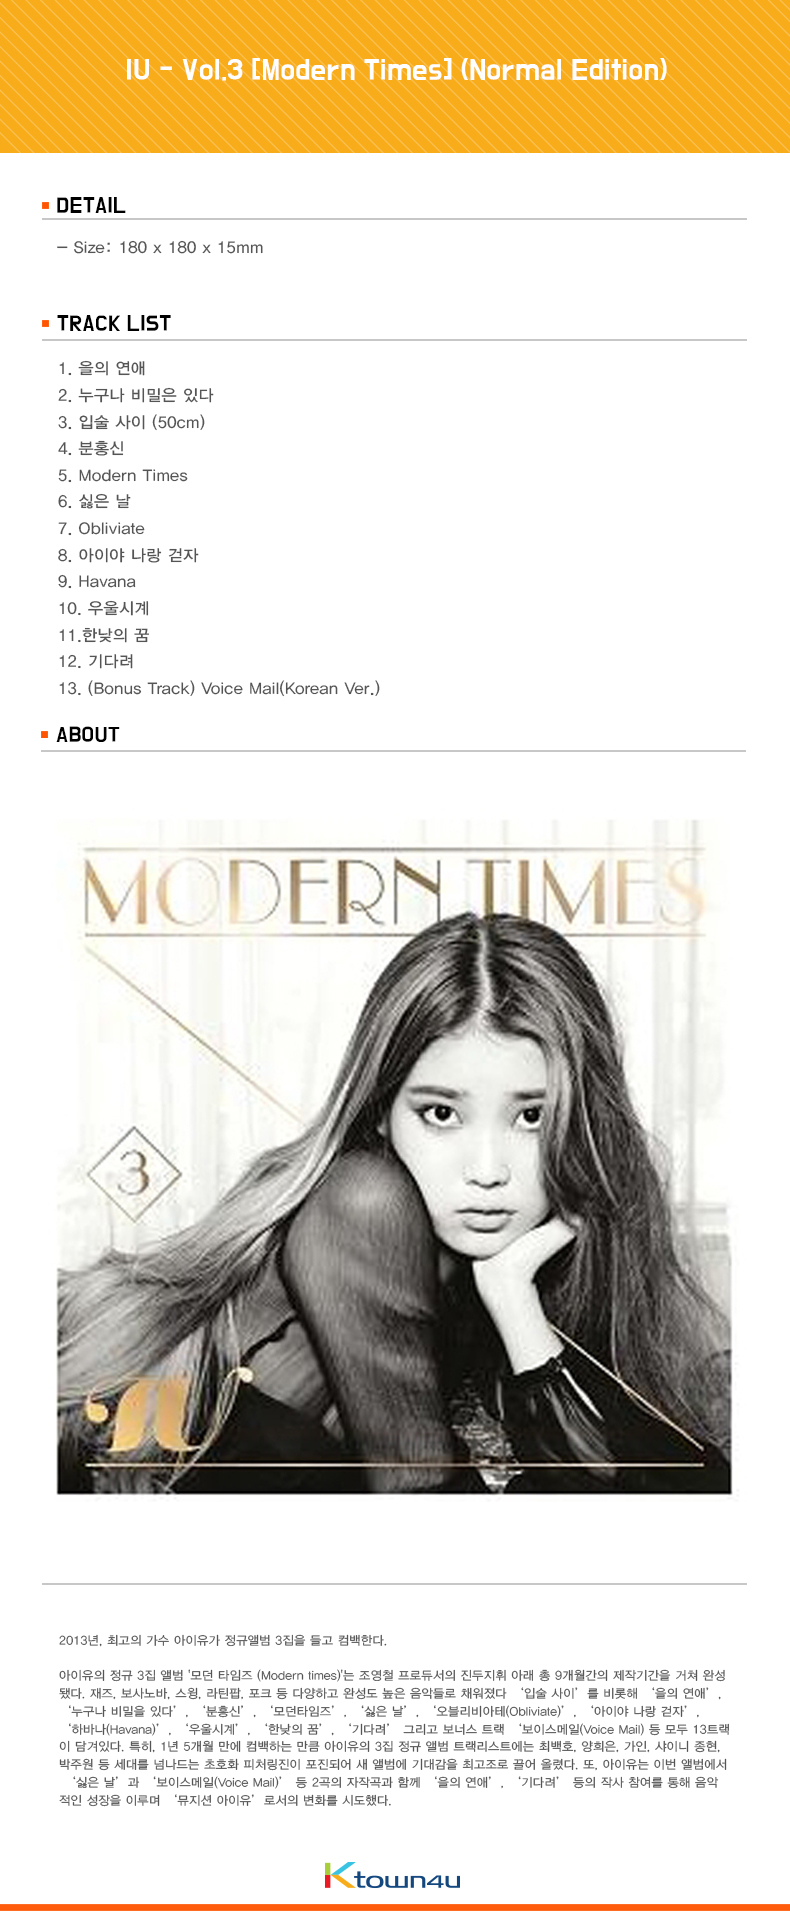 [IU Indonesia] IU - Vol.3 [Modern Times] (Normal Edition)